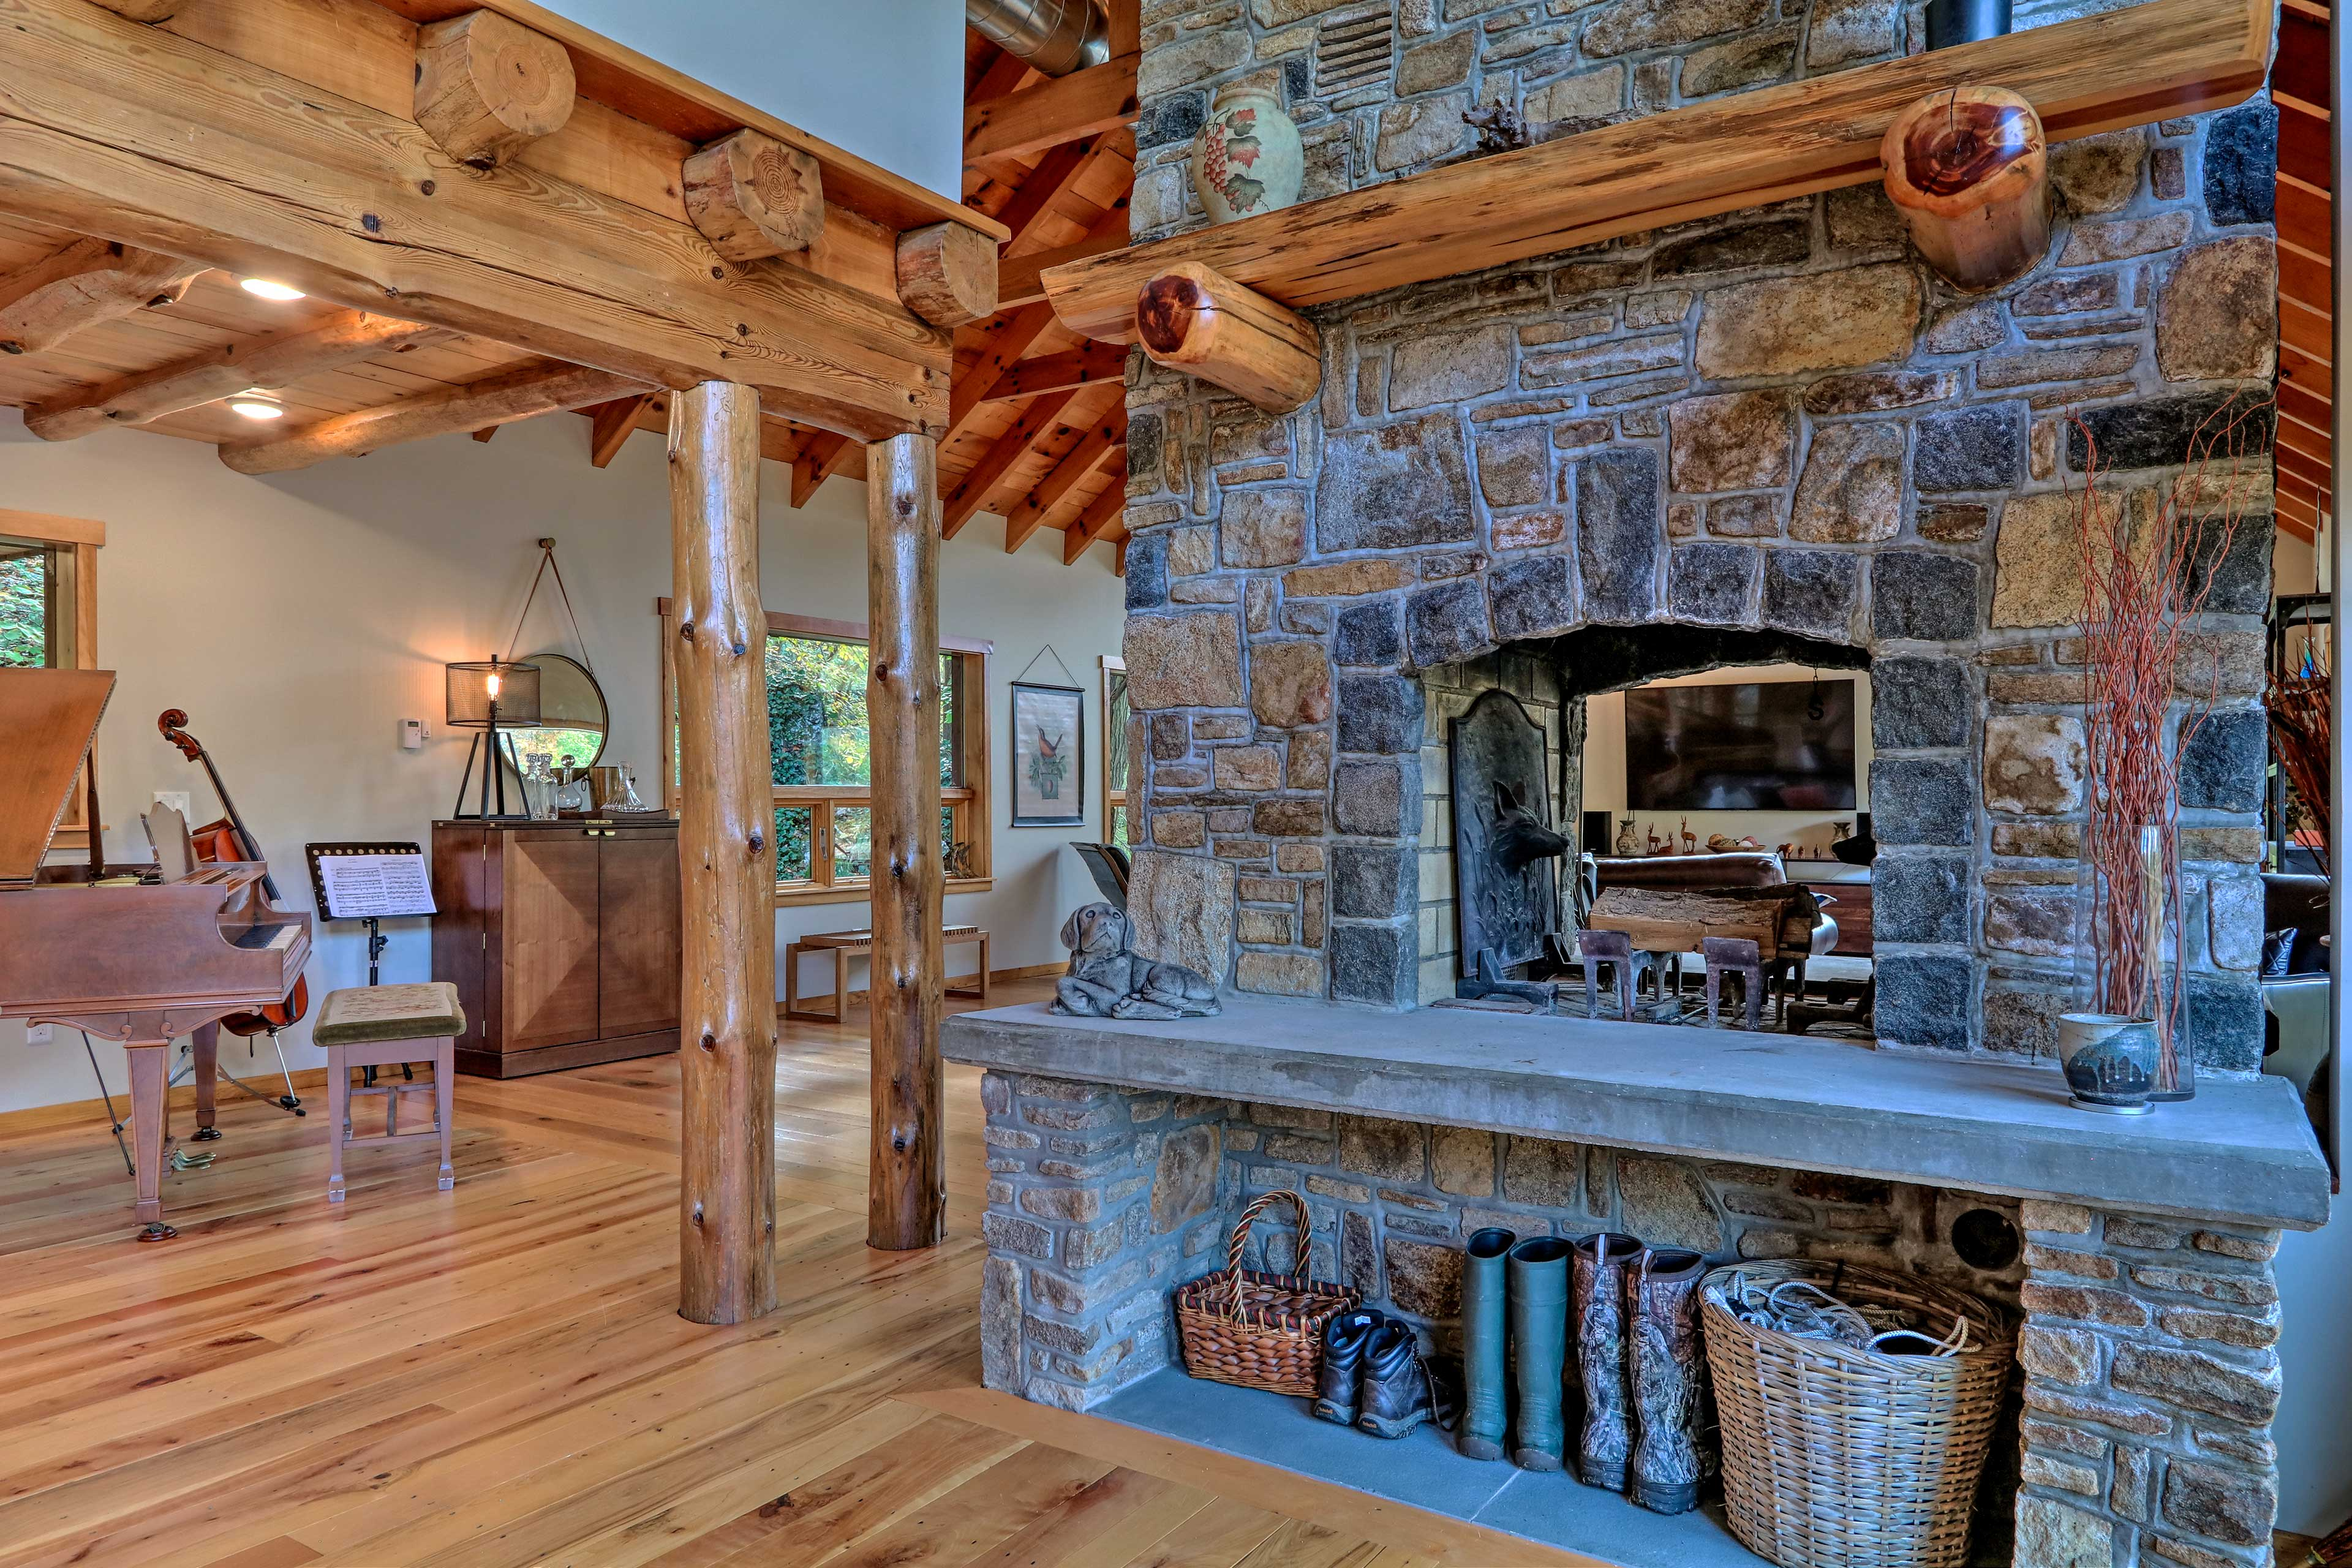 With a central location, this fireplace warms the entire open-concept layout.